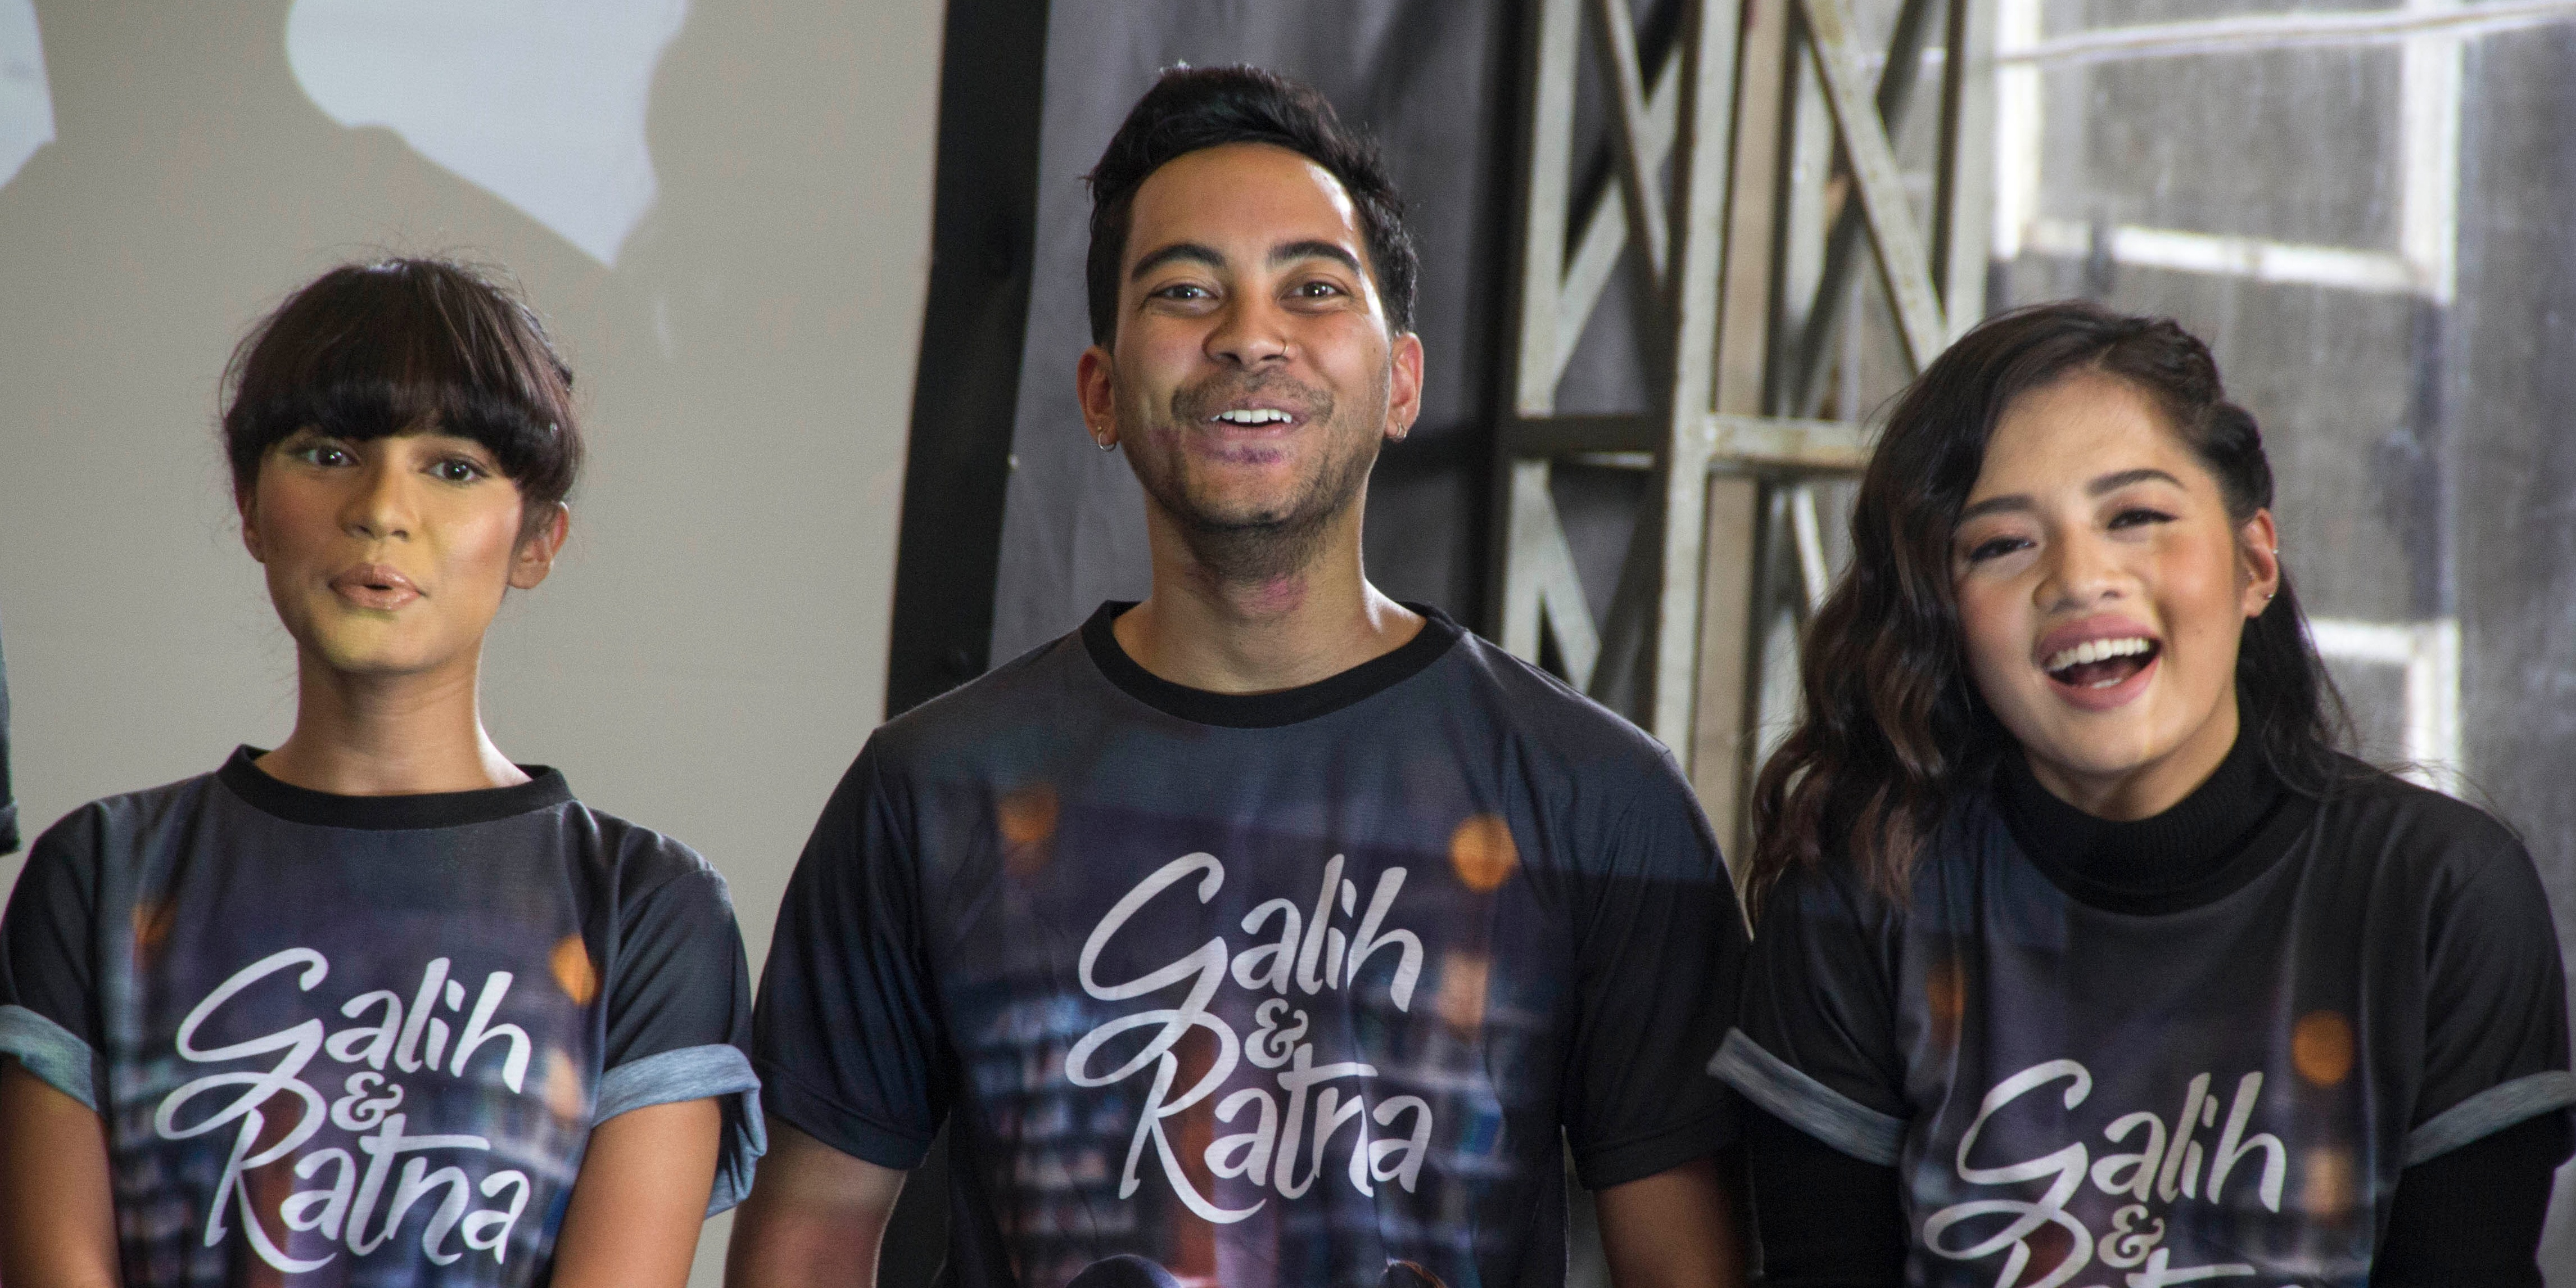 LISTEN: Galih & Ratna OST, featuring White Shoes & The Couples Company, Koil, Rendy Pandugo and more